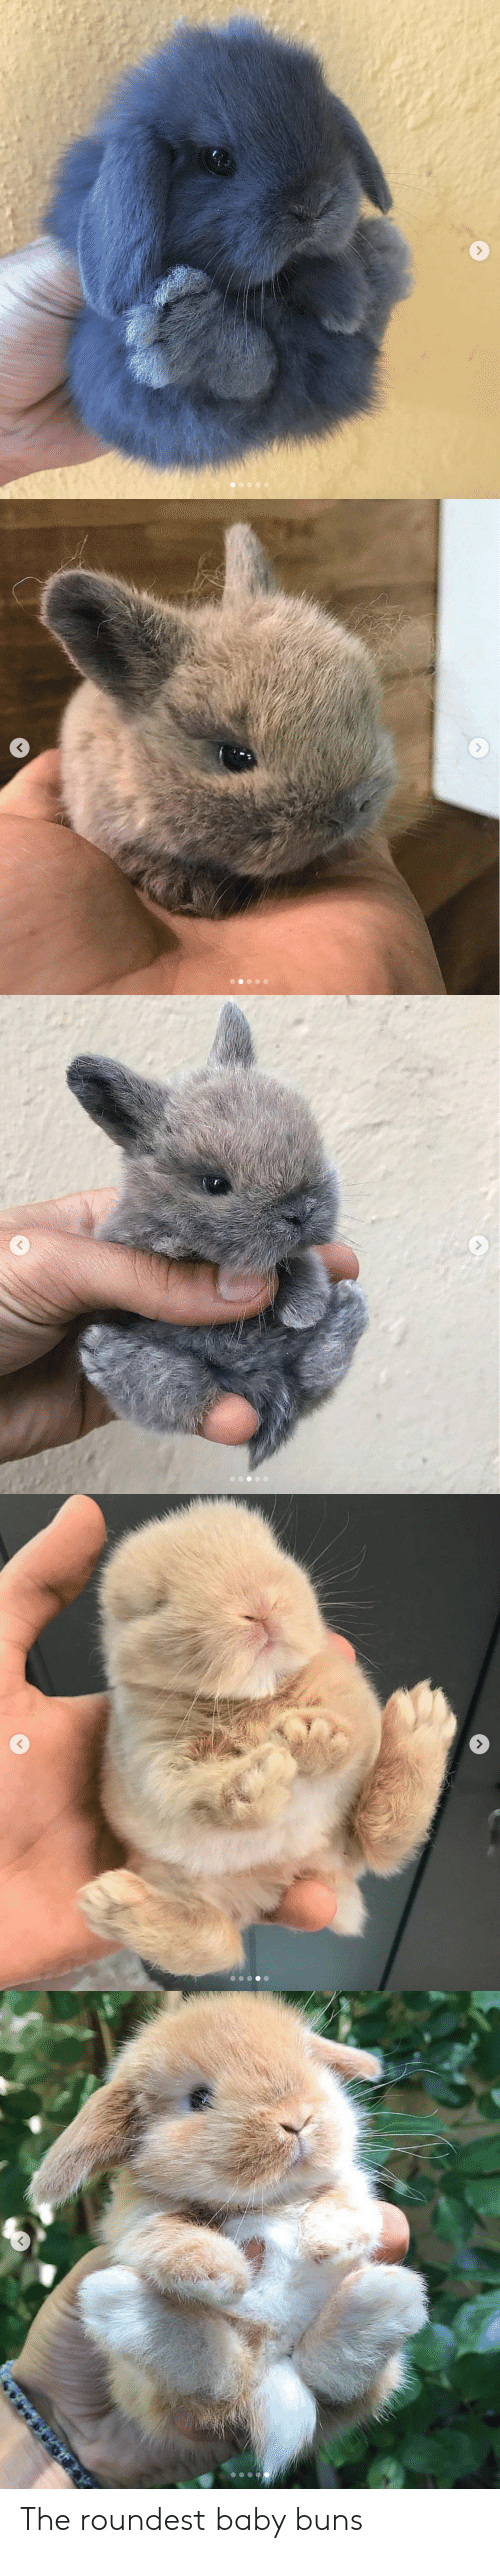 Baby, Buns, and The: The roundest baby buns